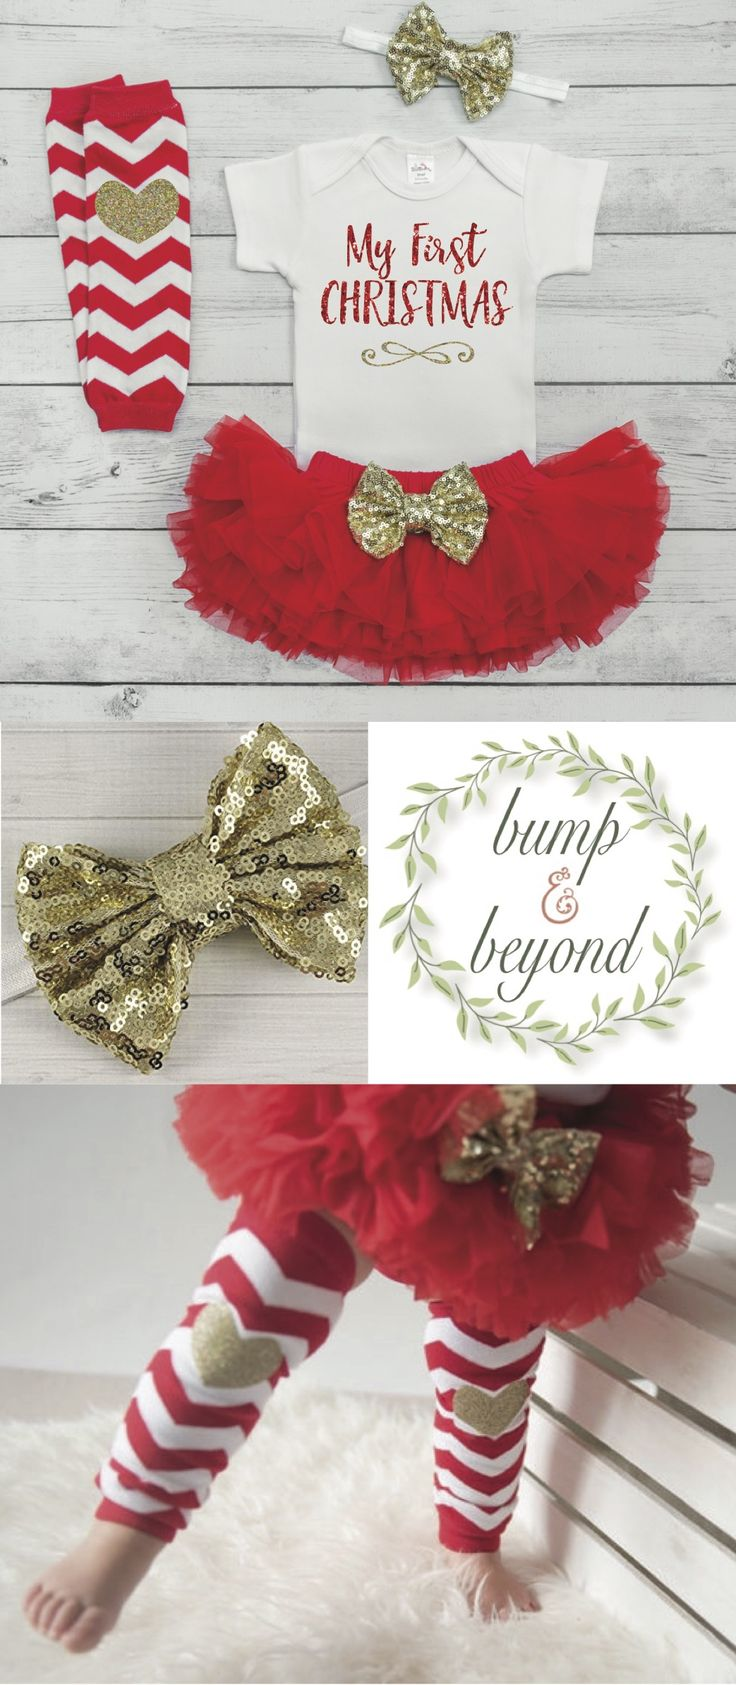 First Christmas Outfit Girl Cute Christmas Outfit Newborn Girl Christmas Outfit Baby Girl Christmas Baby Outfit My 1st Christmas Tutu